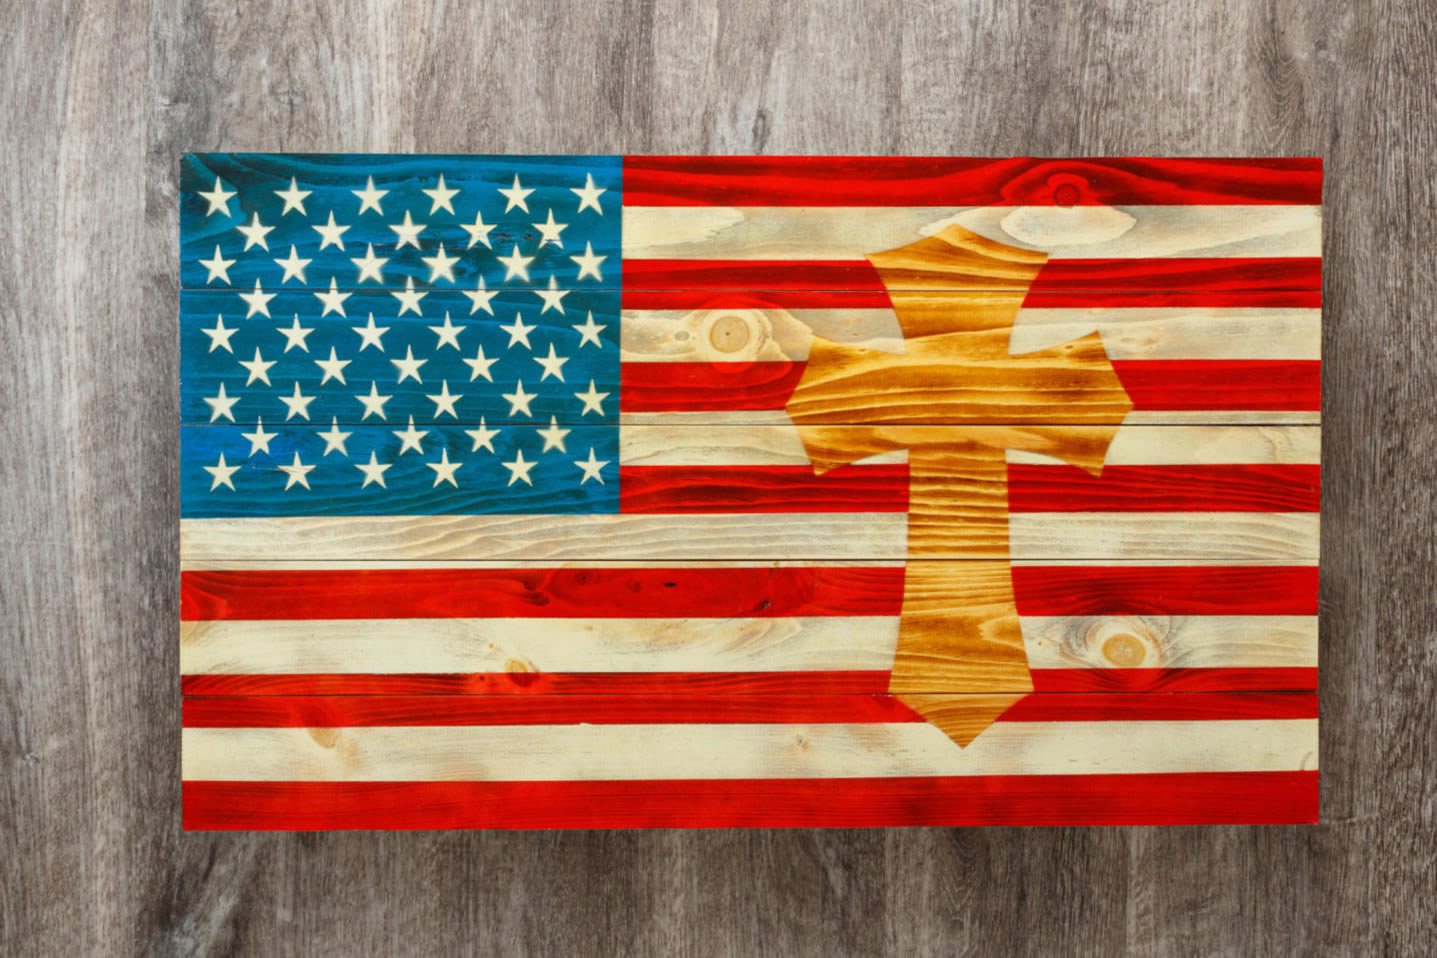 Celtic Cross wooden American flag wall art